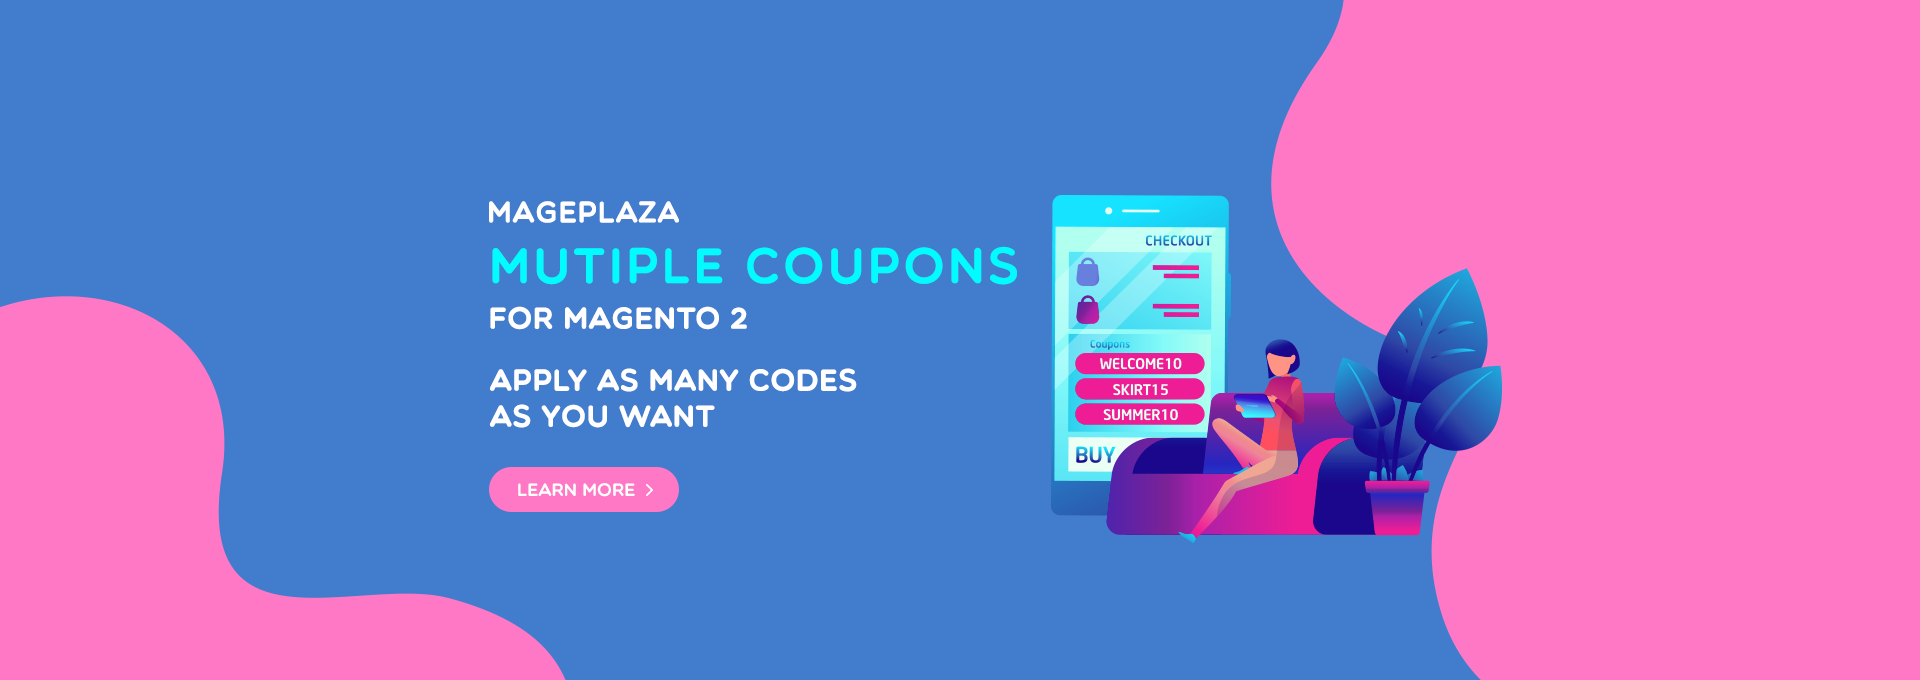 magento 2 multiple coupons